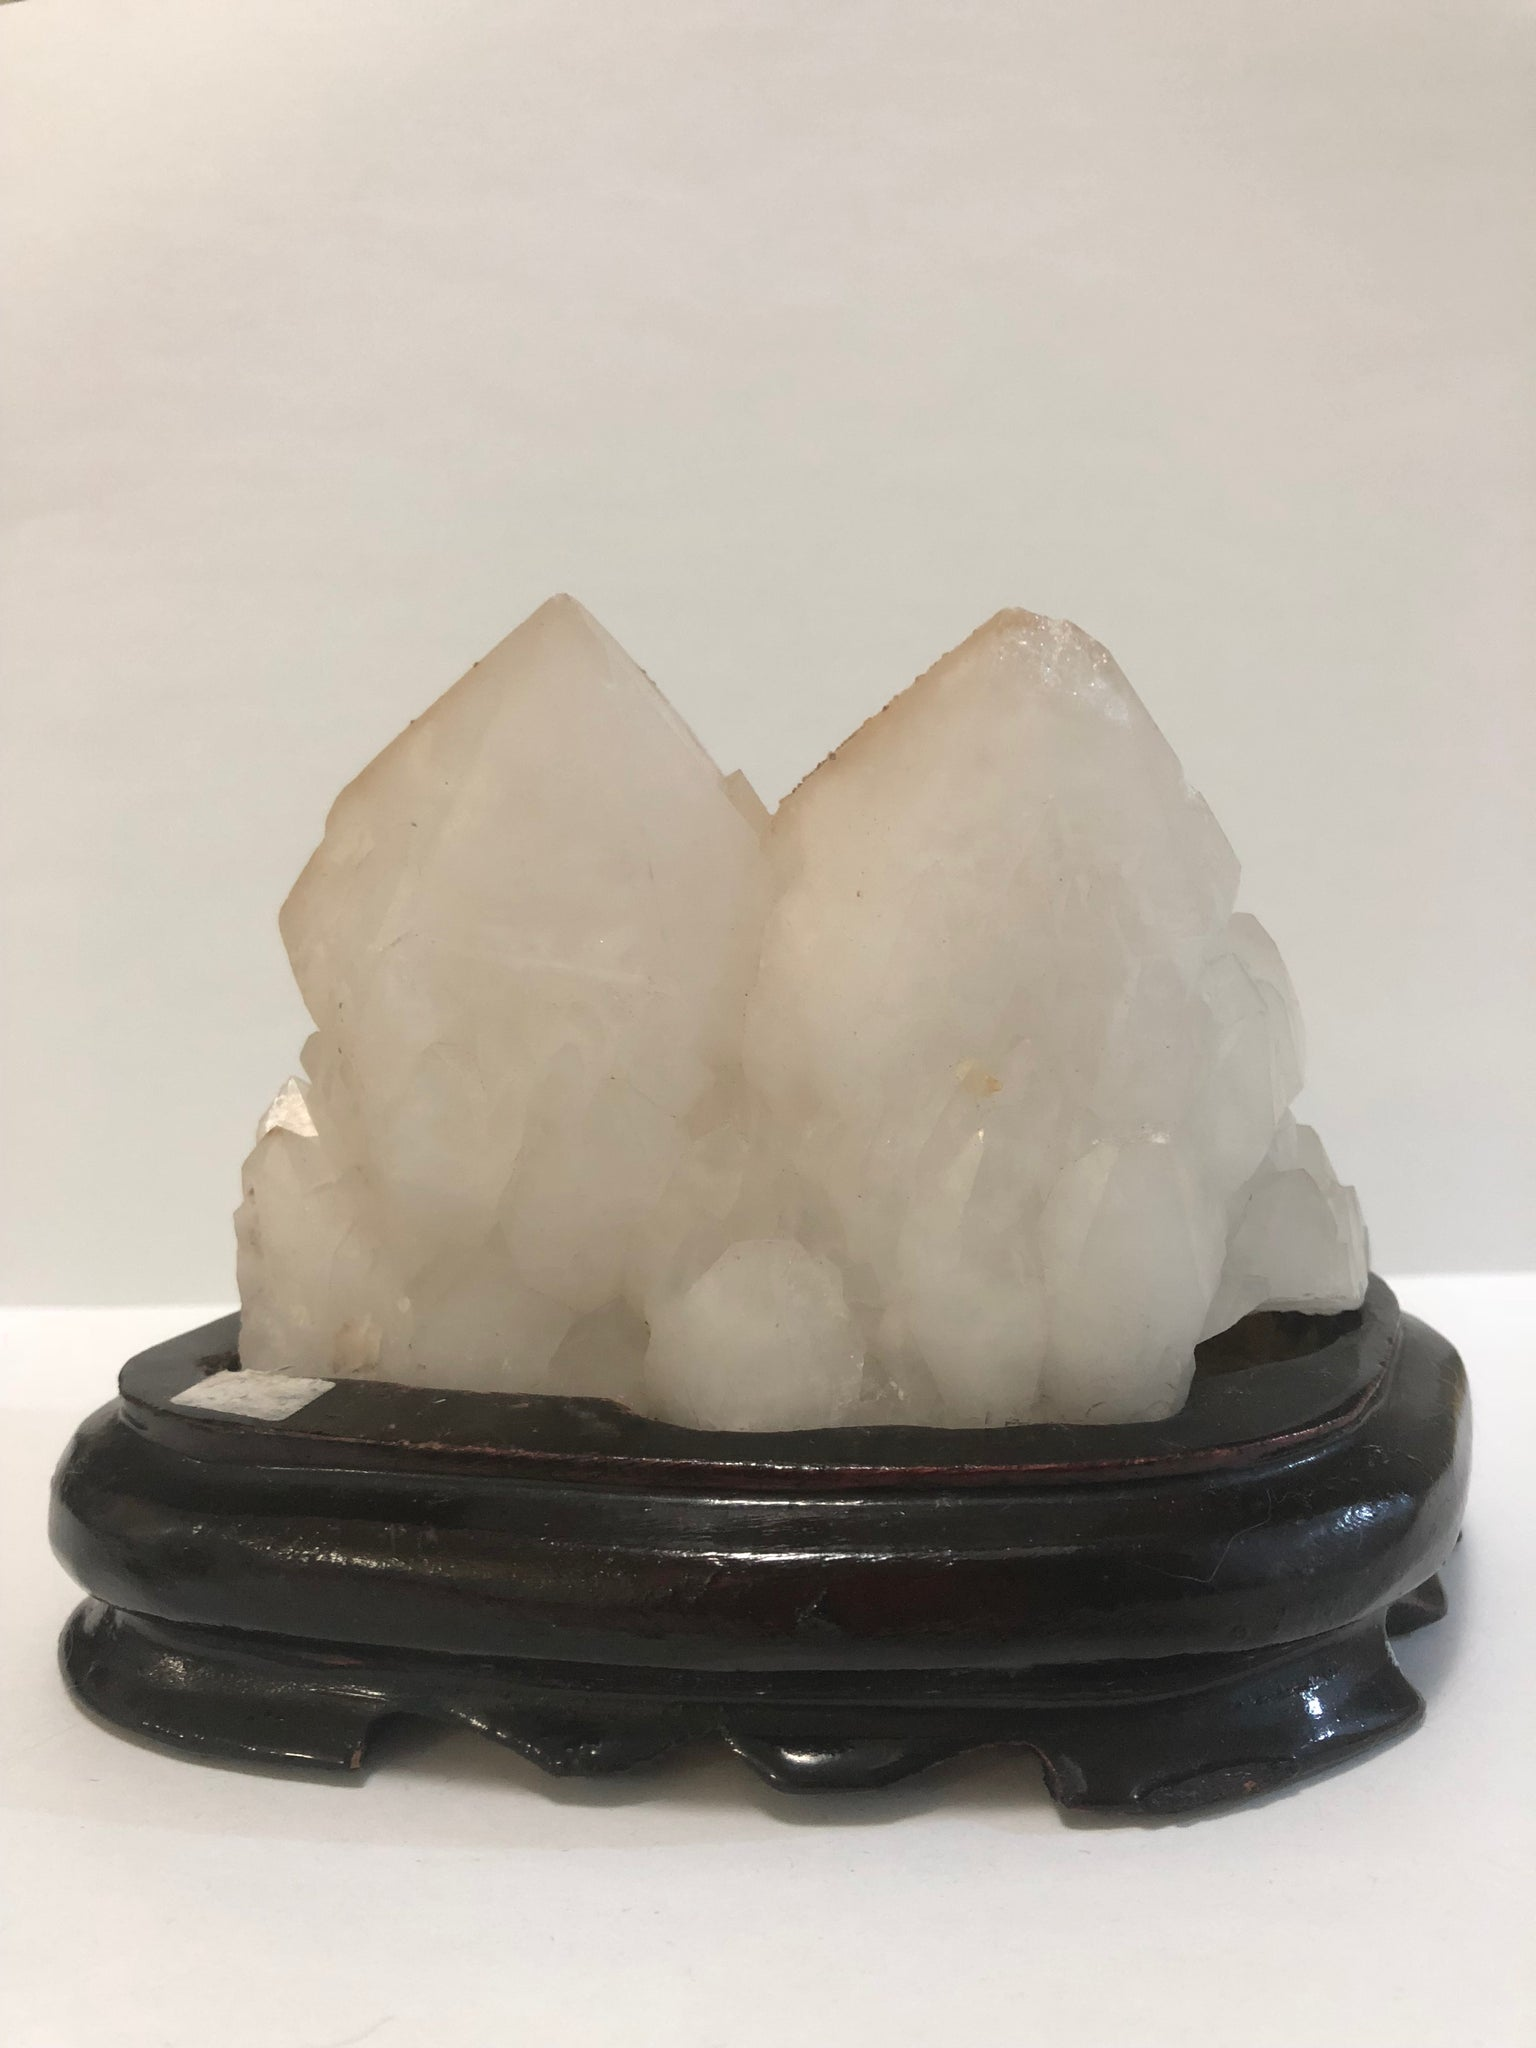 Milky Quartz Raw Specimen (Snow White Quartz) 671g